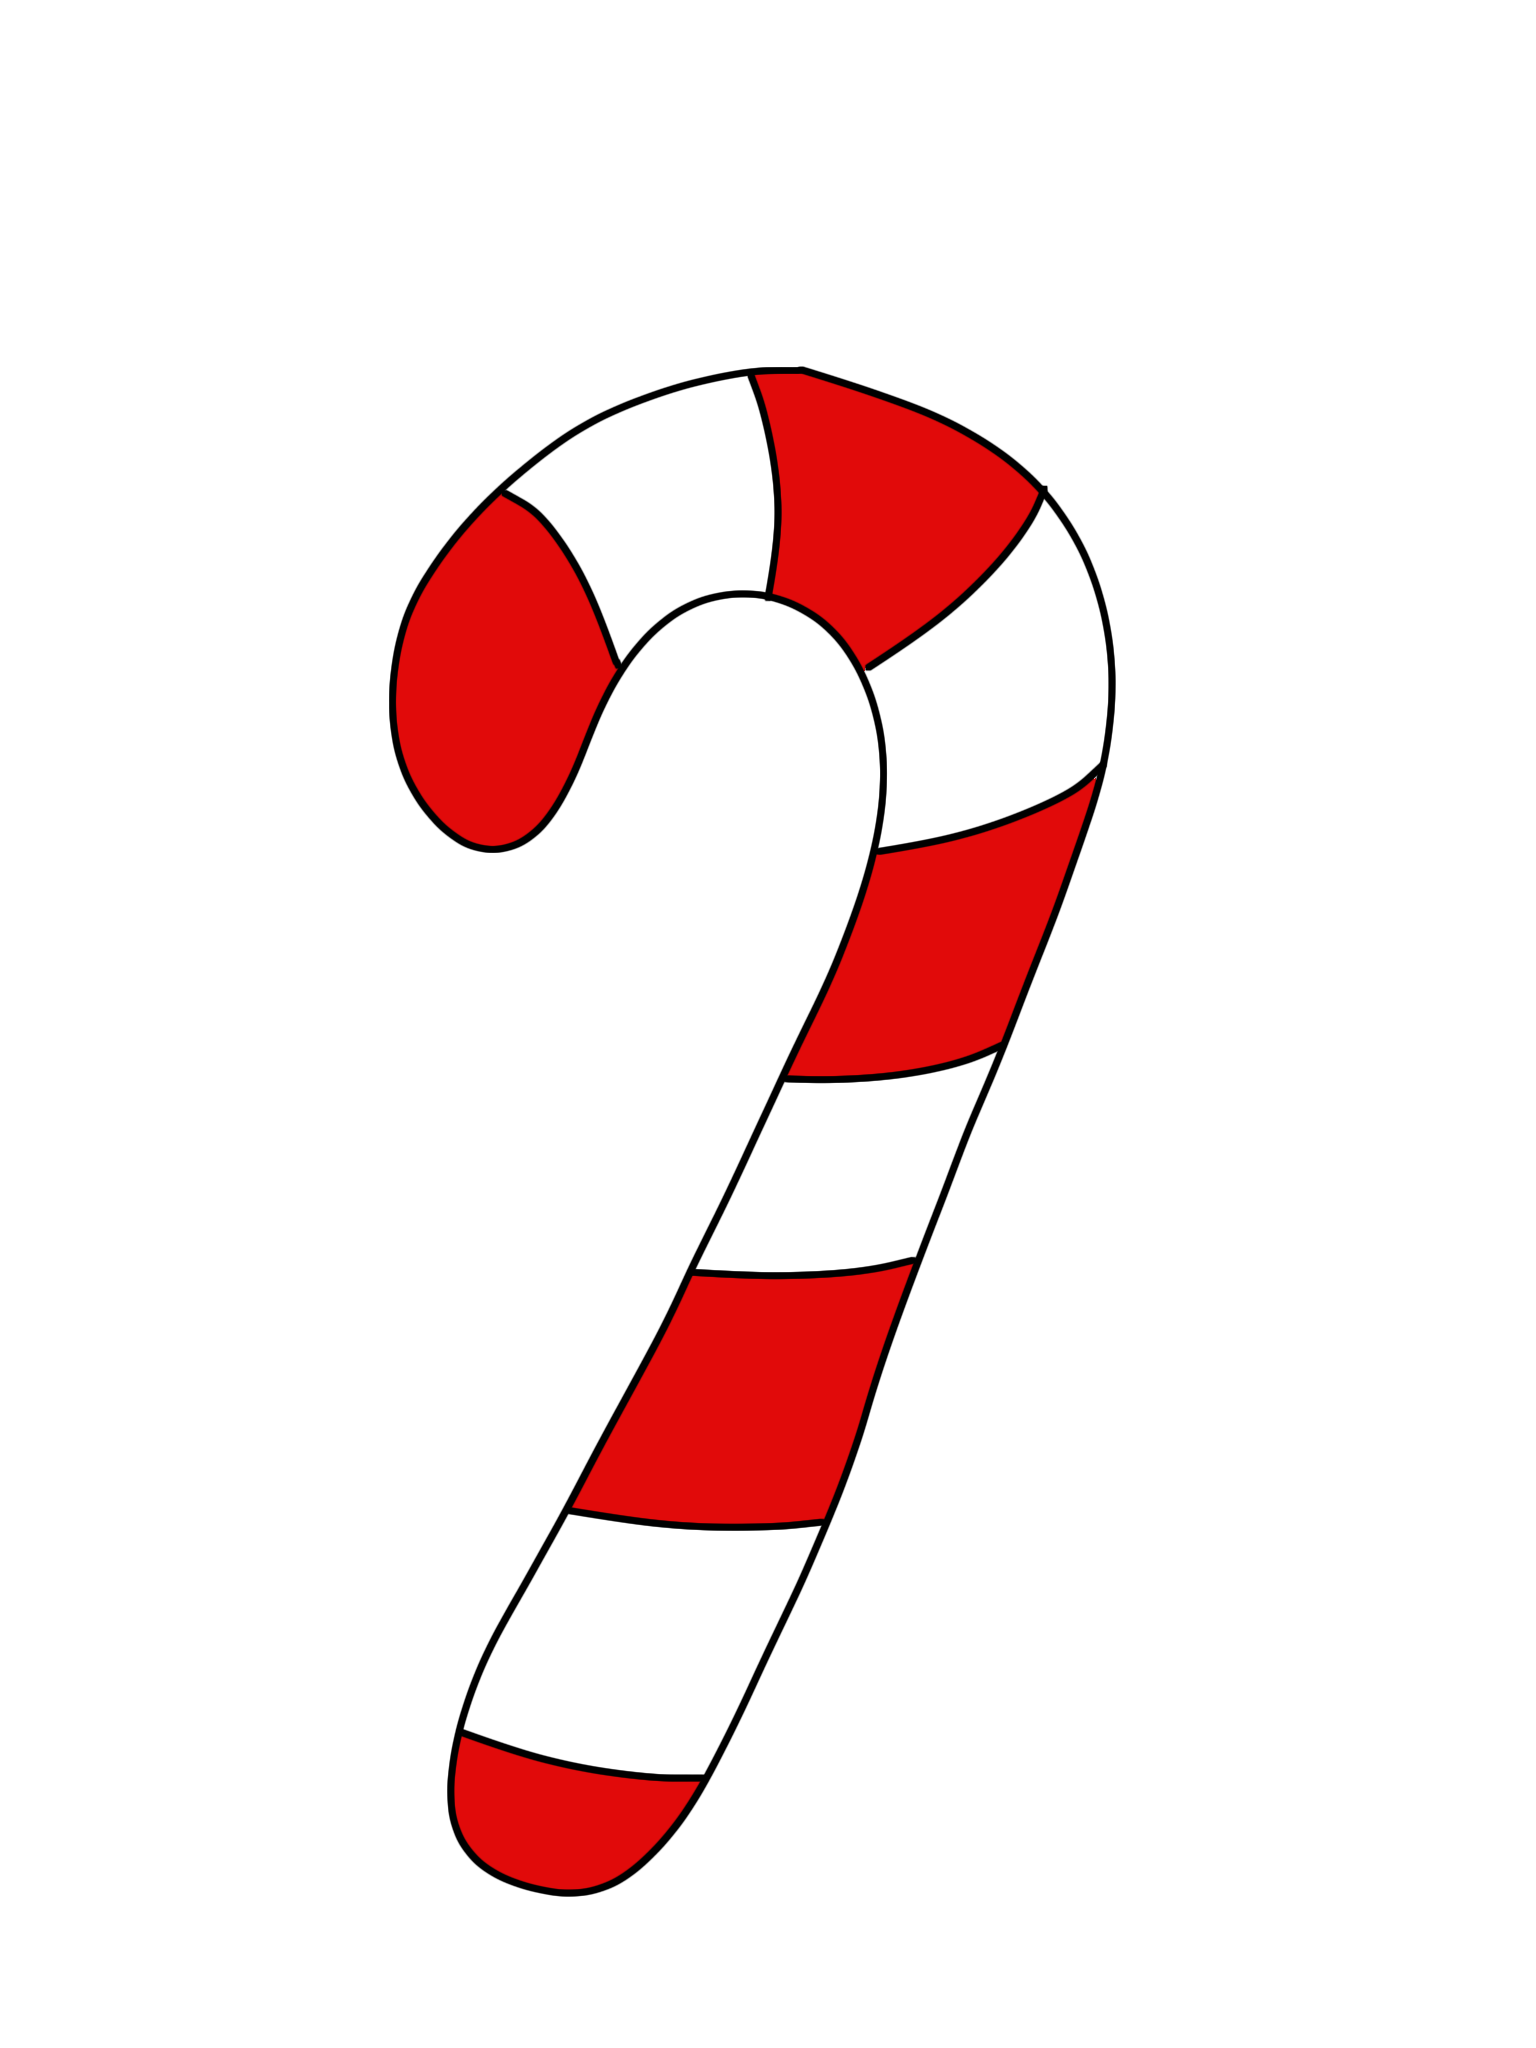 Candy Cane Clip Art Clipart Free Clipart-Candy cane clip art clipart free clipart microsoft clipart image 2-5